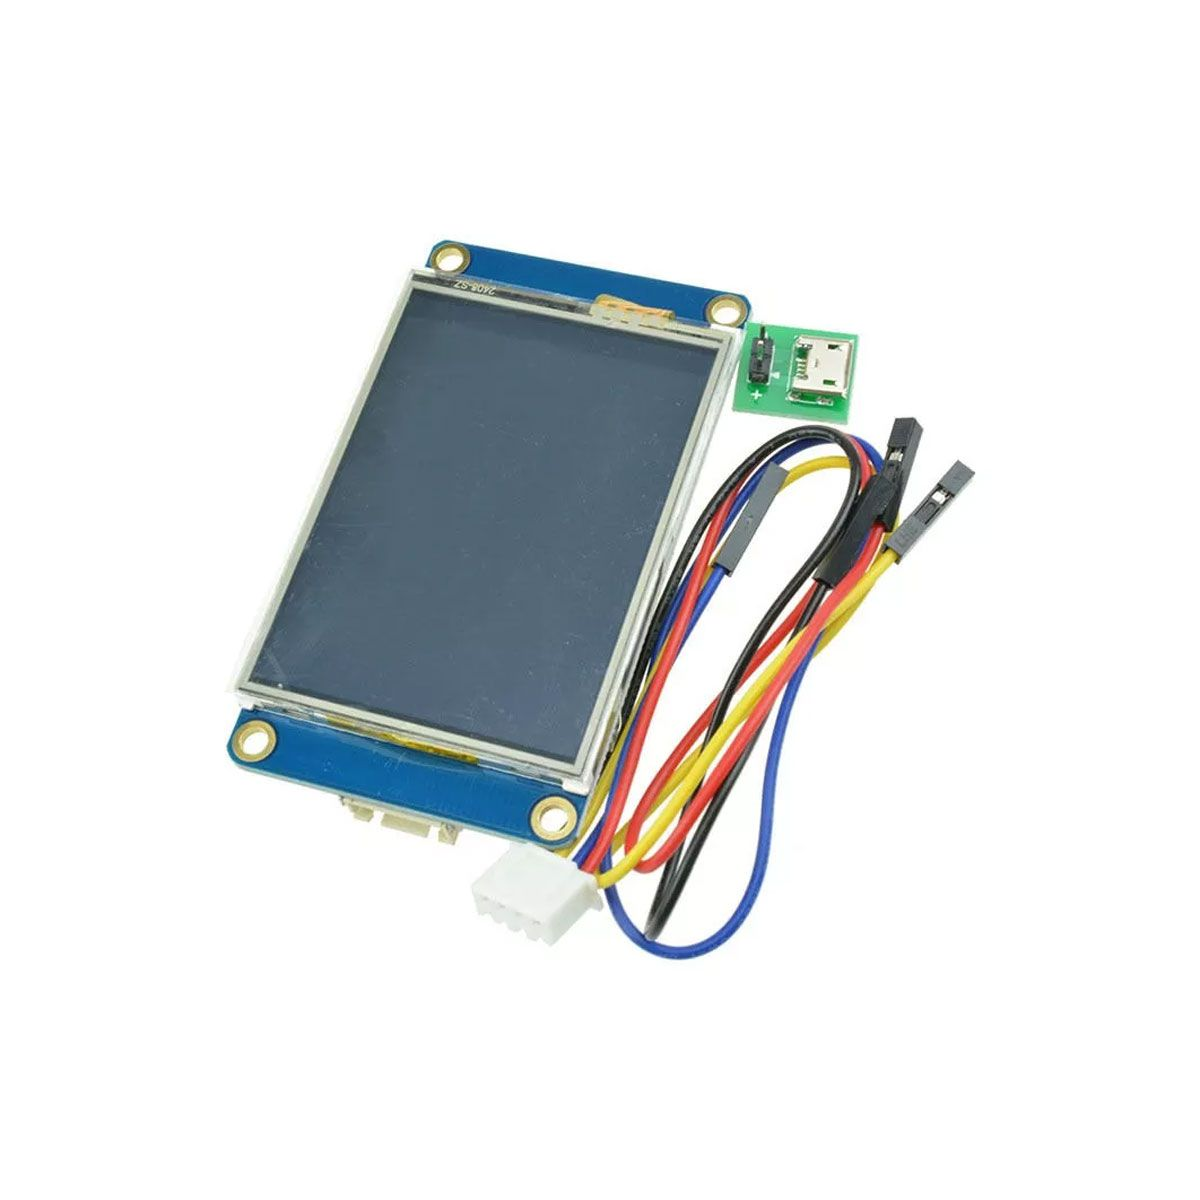 Tela LCD Nextion 2.4 TFT Hmi 320x240 Touch Screen